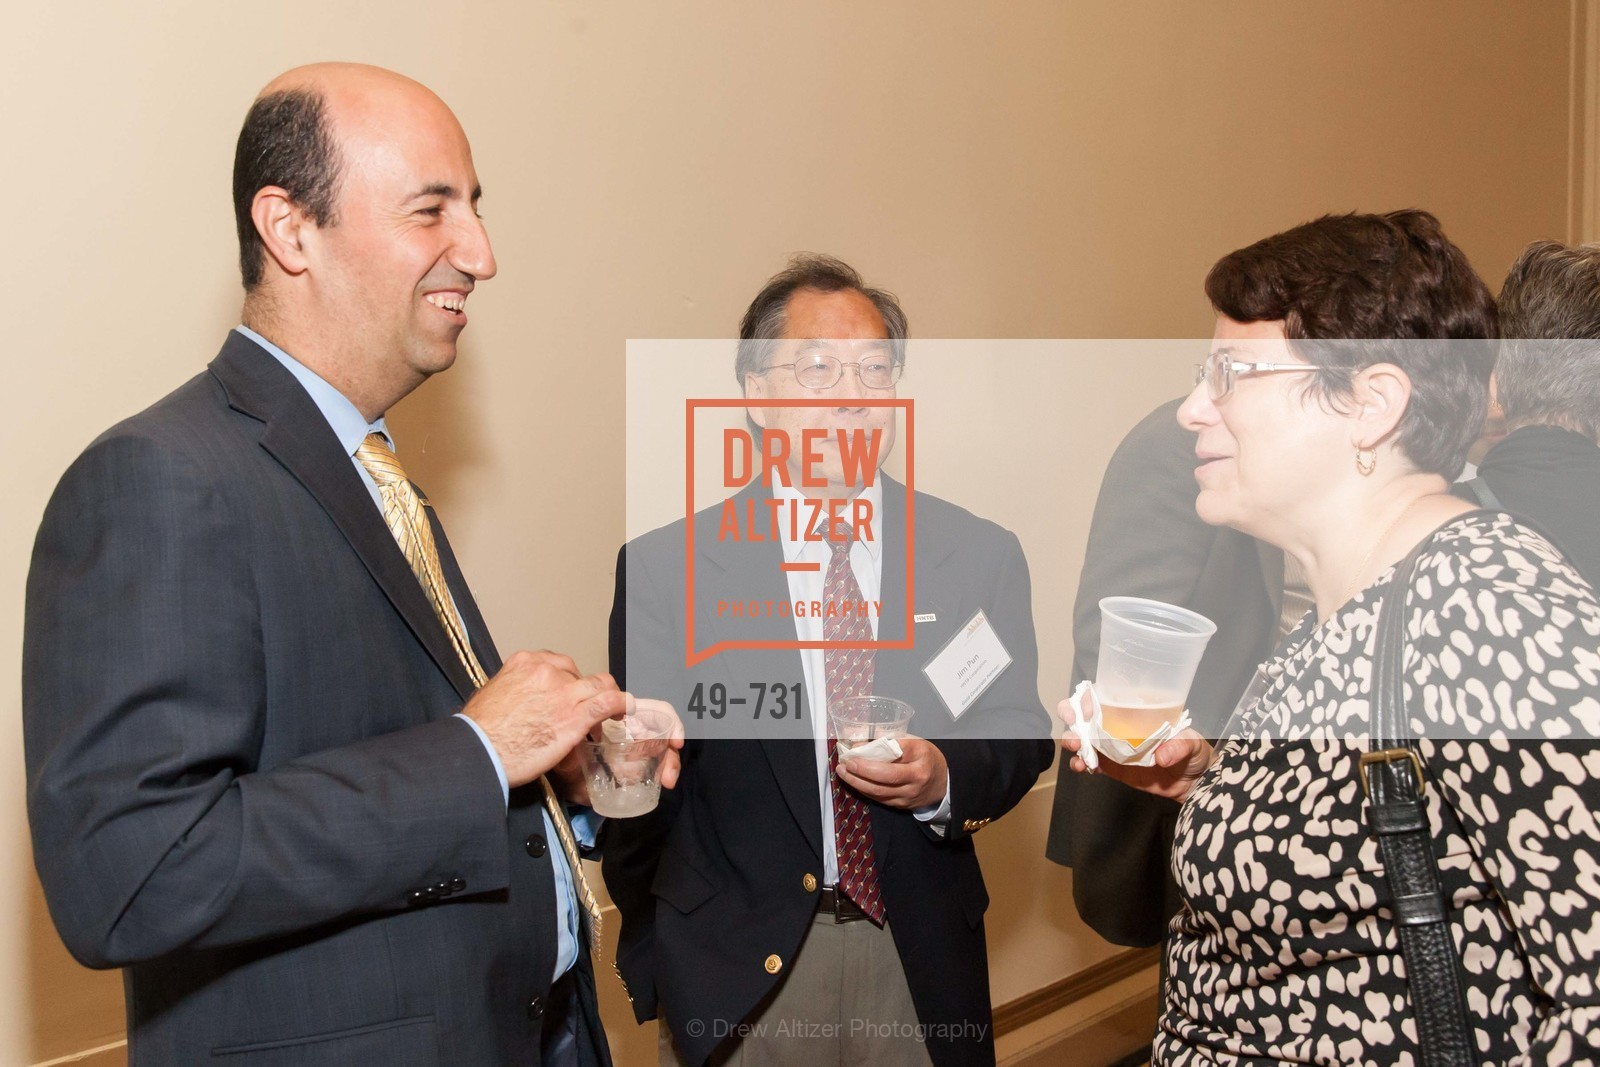 Chadi Chadvek, Jim Pun, Kathy Lafata, WOMEN'S TRANSPORTATION SEMINAR SF Bay Area Chapter Annual Scholarship Awards, US, May 15th, 2015,Drew Altizer, Drew Altizer Photography, full-service agency, private events, San Francisco photographer, photographer california